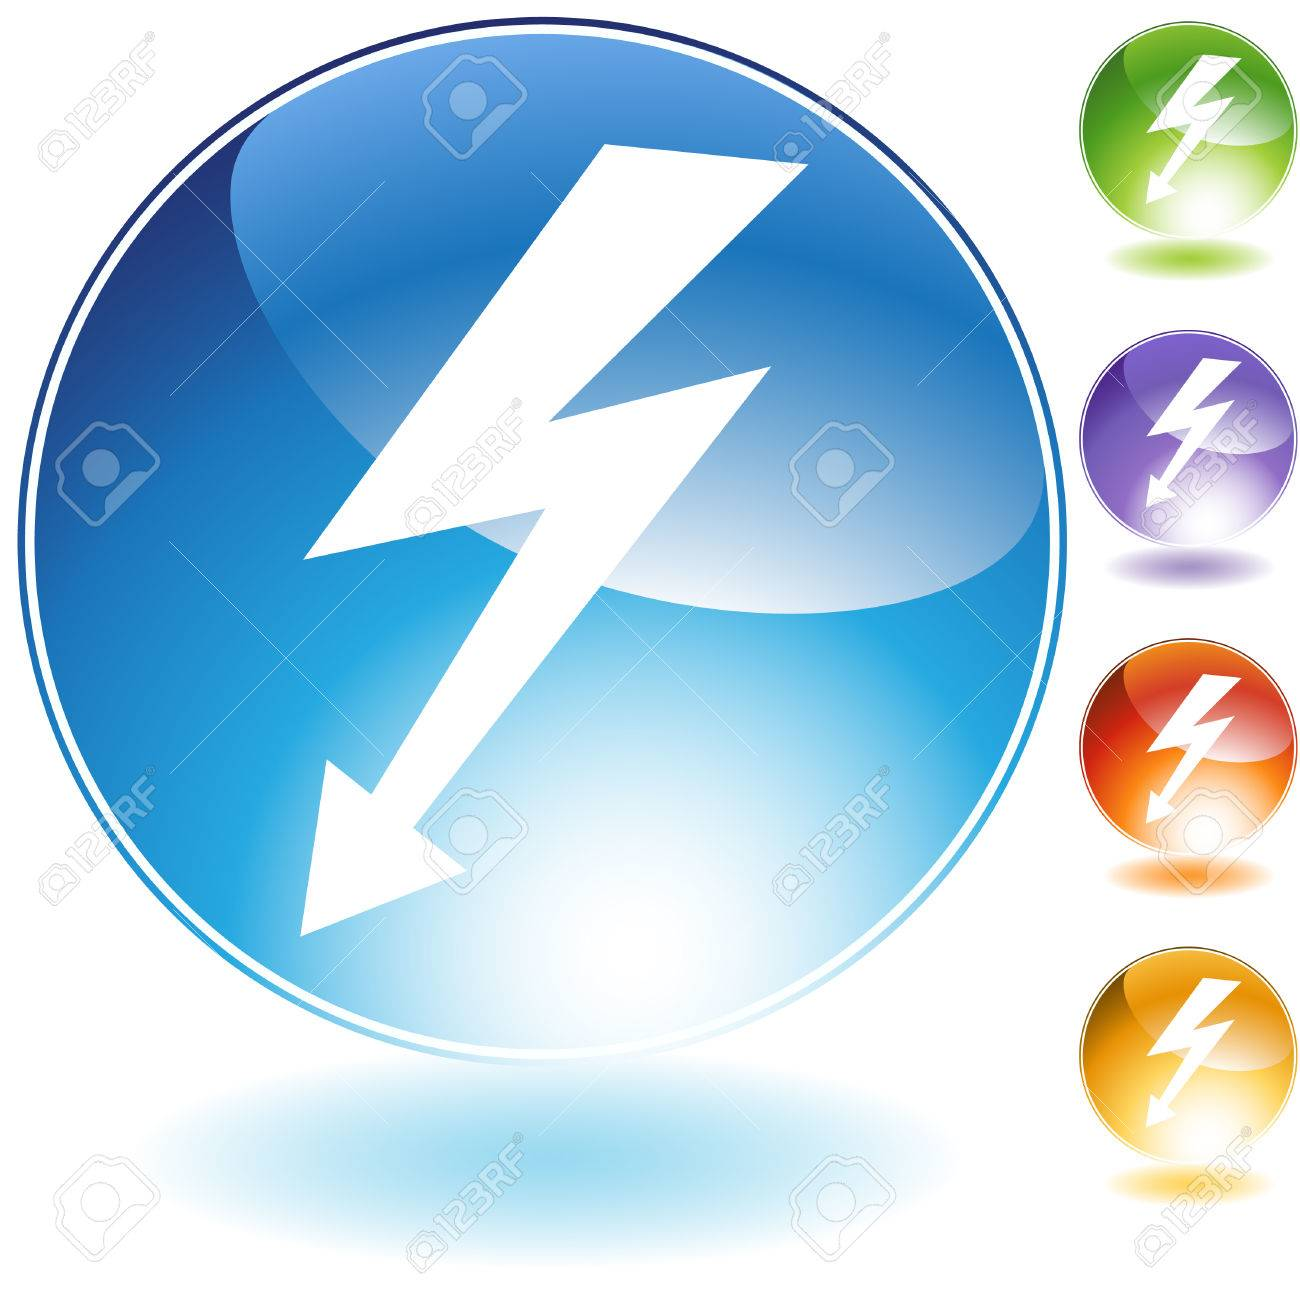 High voltage crystal icon isolated on a white background. Stock Vector - 5892070